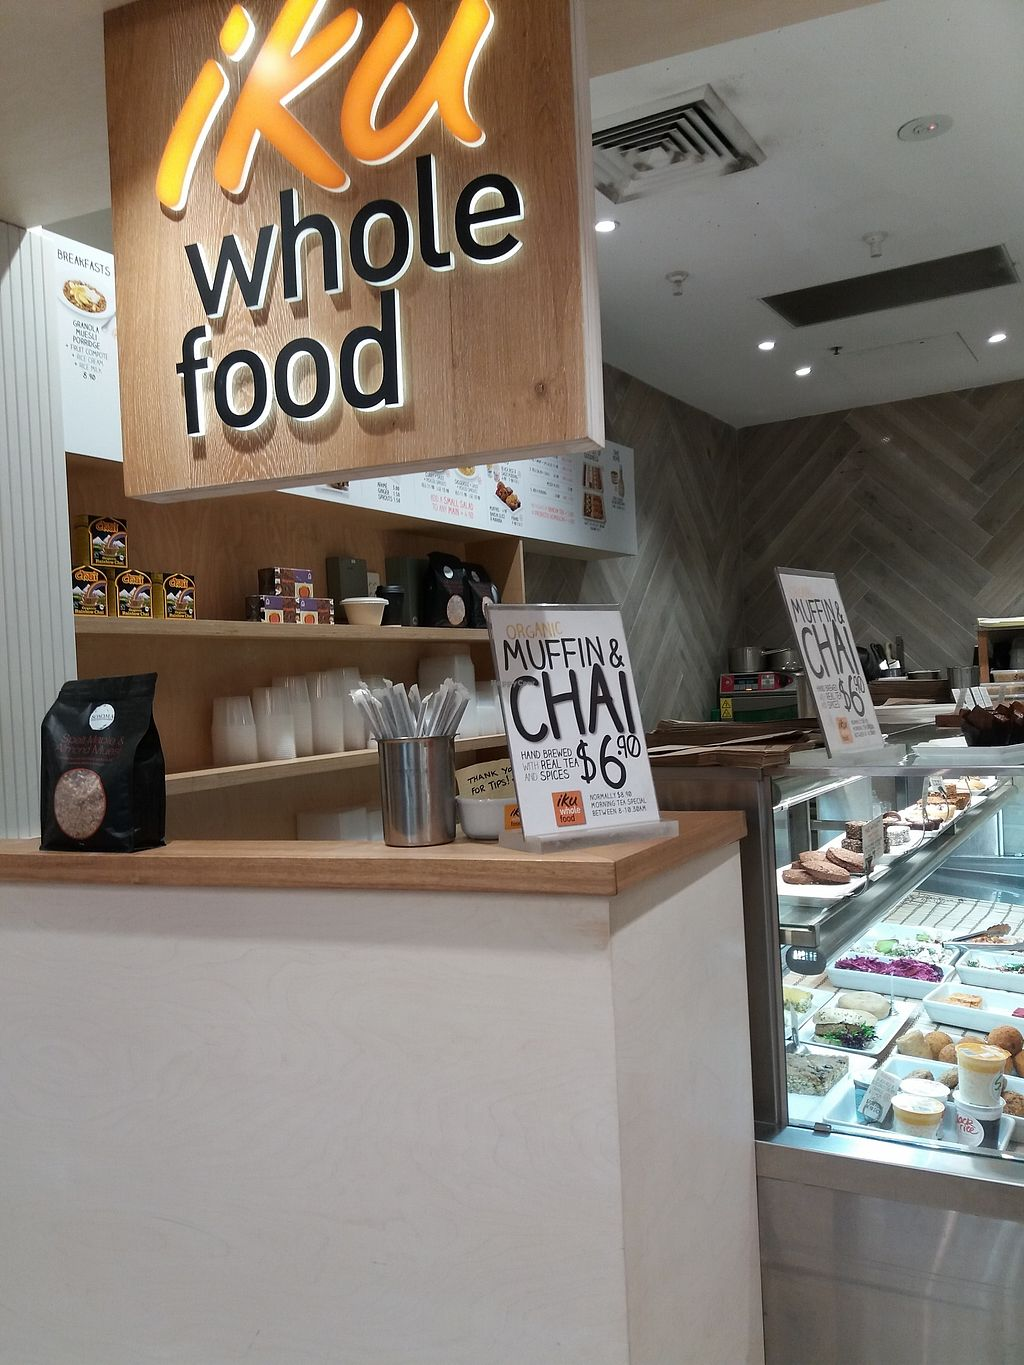 """Photo of Iku Wholefood Kitchen - Greenwood Plaza  by <a href=""""/members/profile/veganvirtues"""">veganvirtues</a> <br/>Shop entrance <br/> September 19, 2017  - <a href='/contact/abuse/image/23181/305957'>Report</a>"""